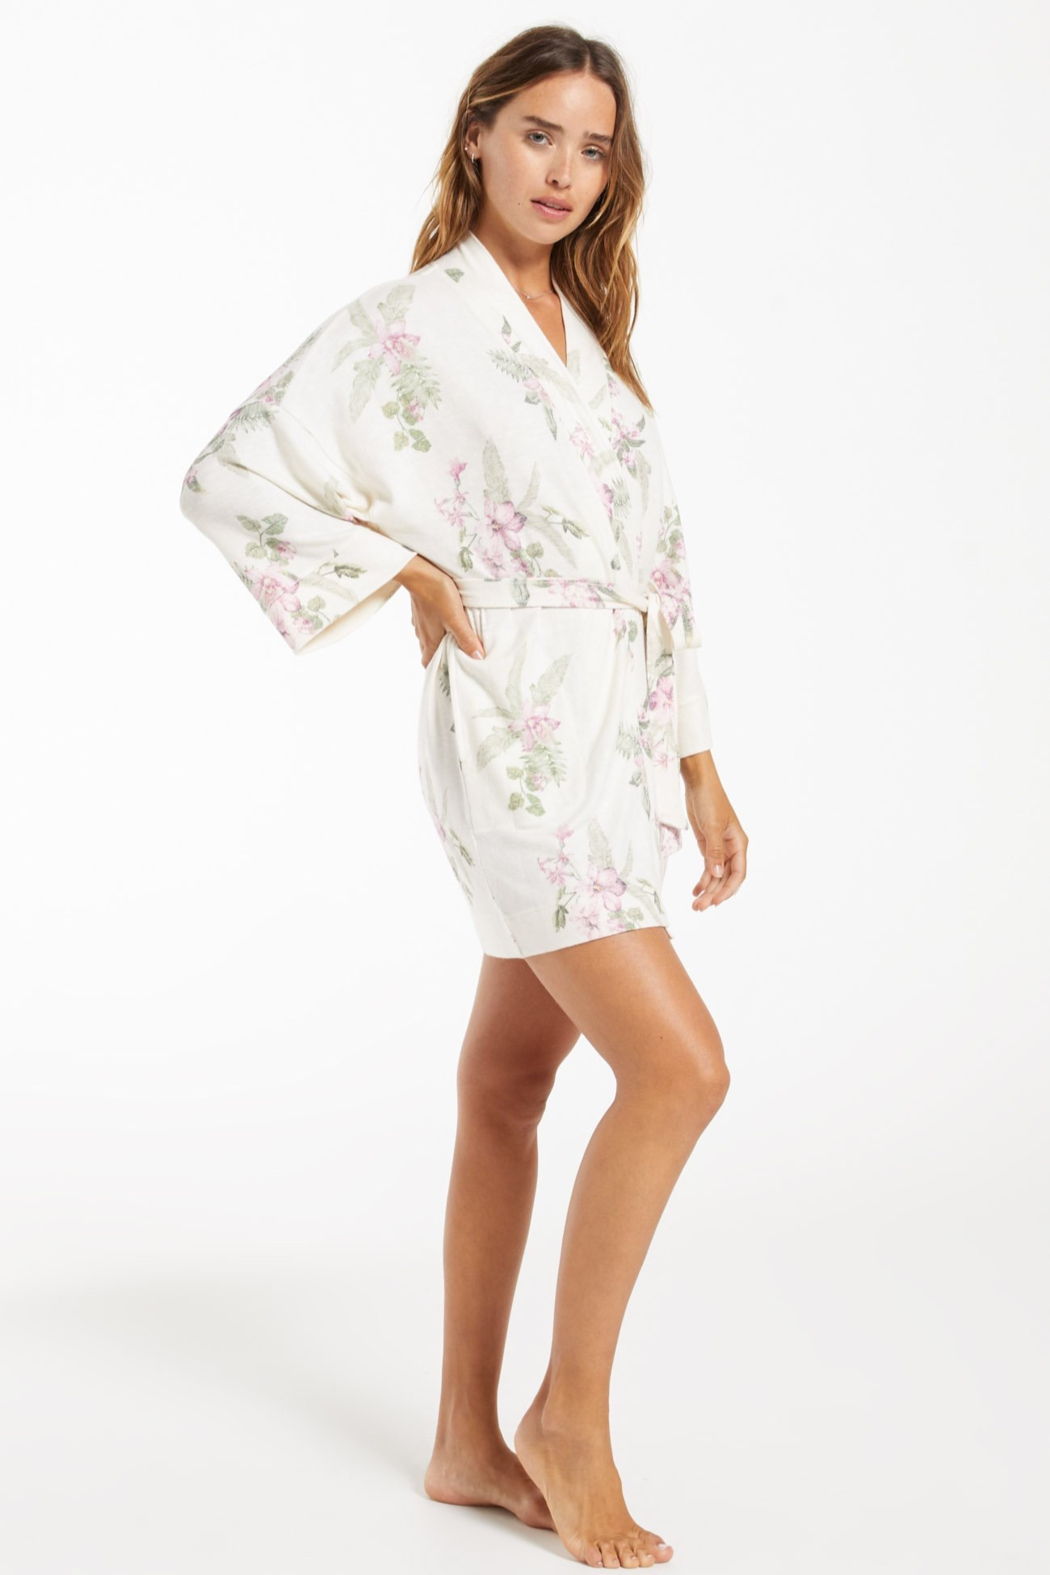 z supply Vacay Floral Robe - Back Cropped Image